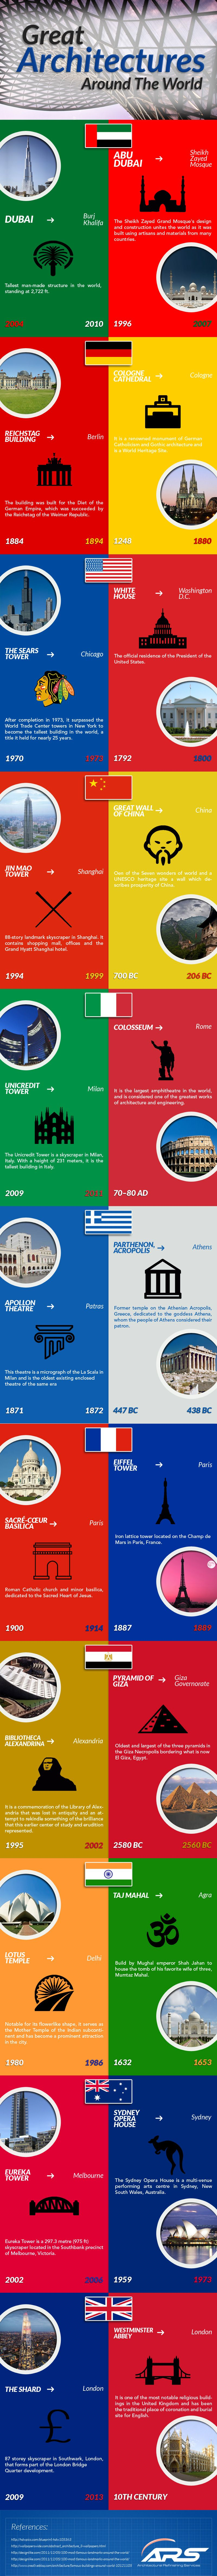 Great Architecture Around the World #infographic